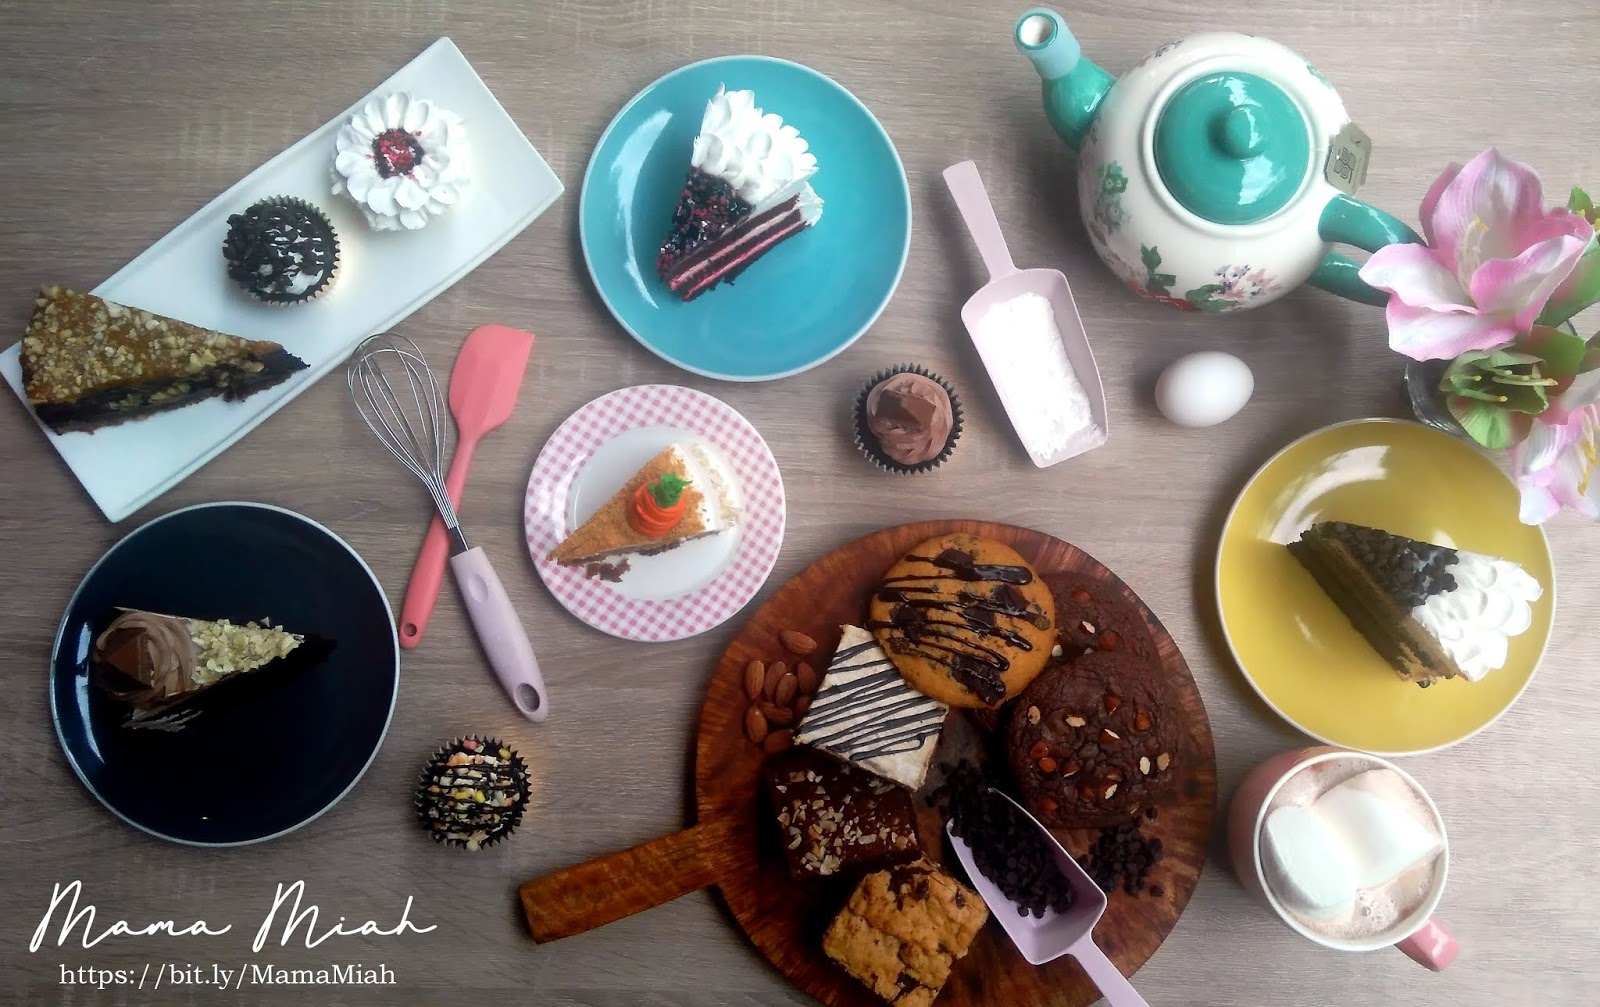 Cakes and Pastries at Yolks Flower Cafe + Cupcakery - Davao City - #MamaMiah